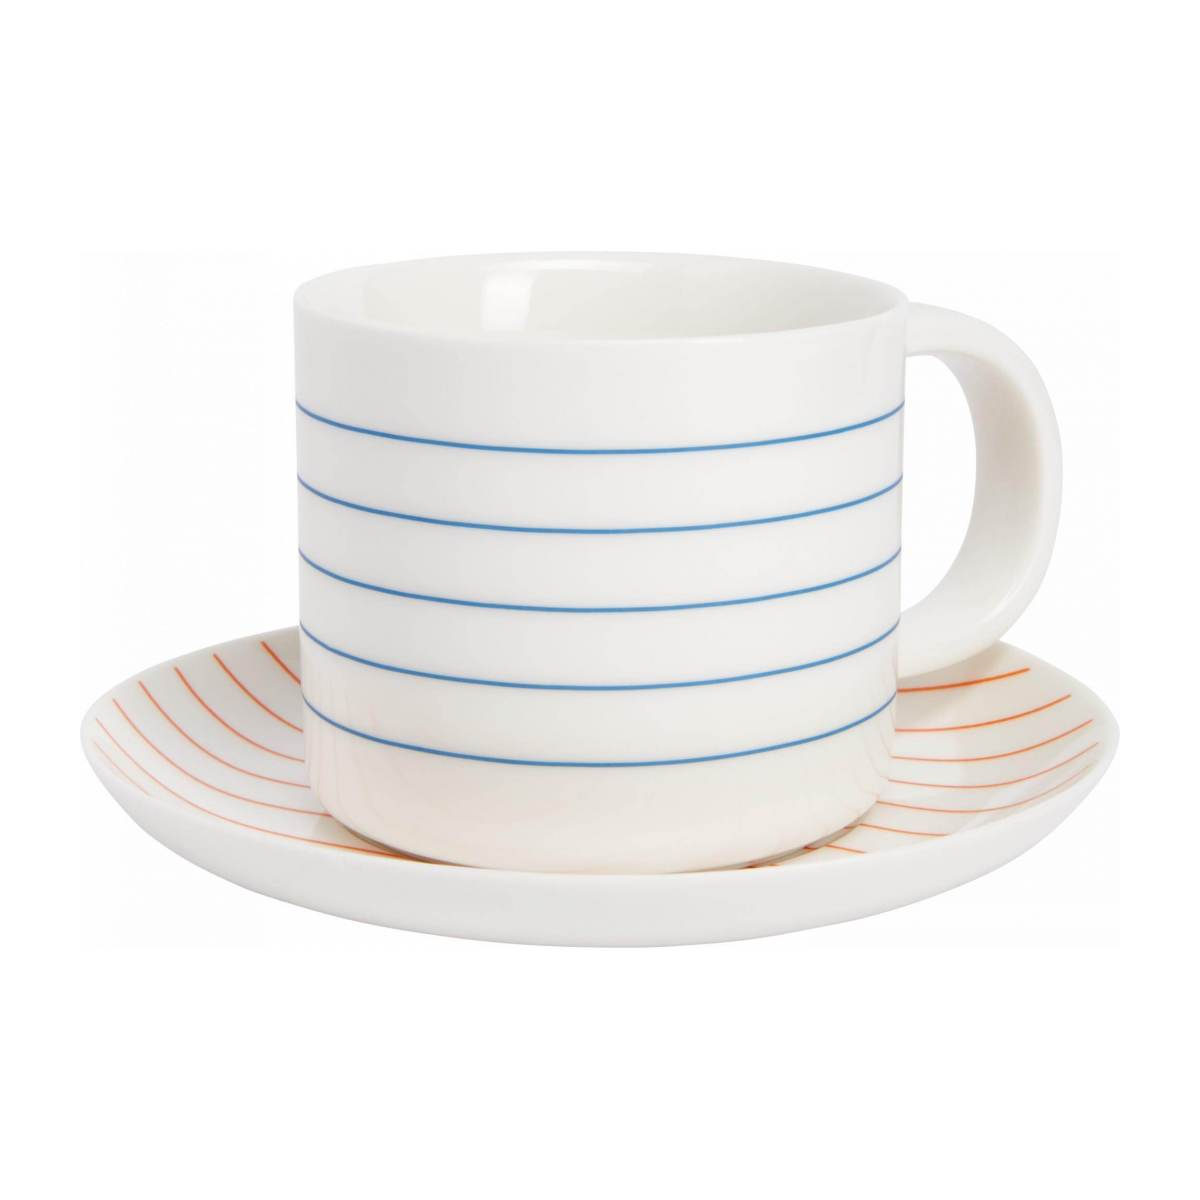 Tea cup et soucoupe made of porcelain, with red stripes n°1